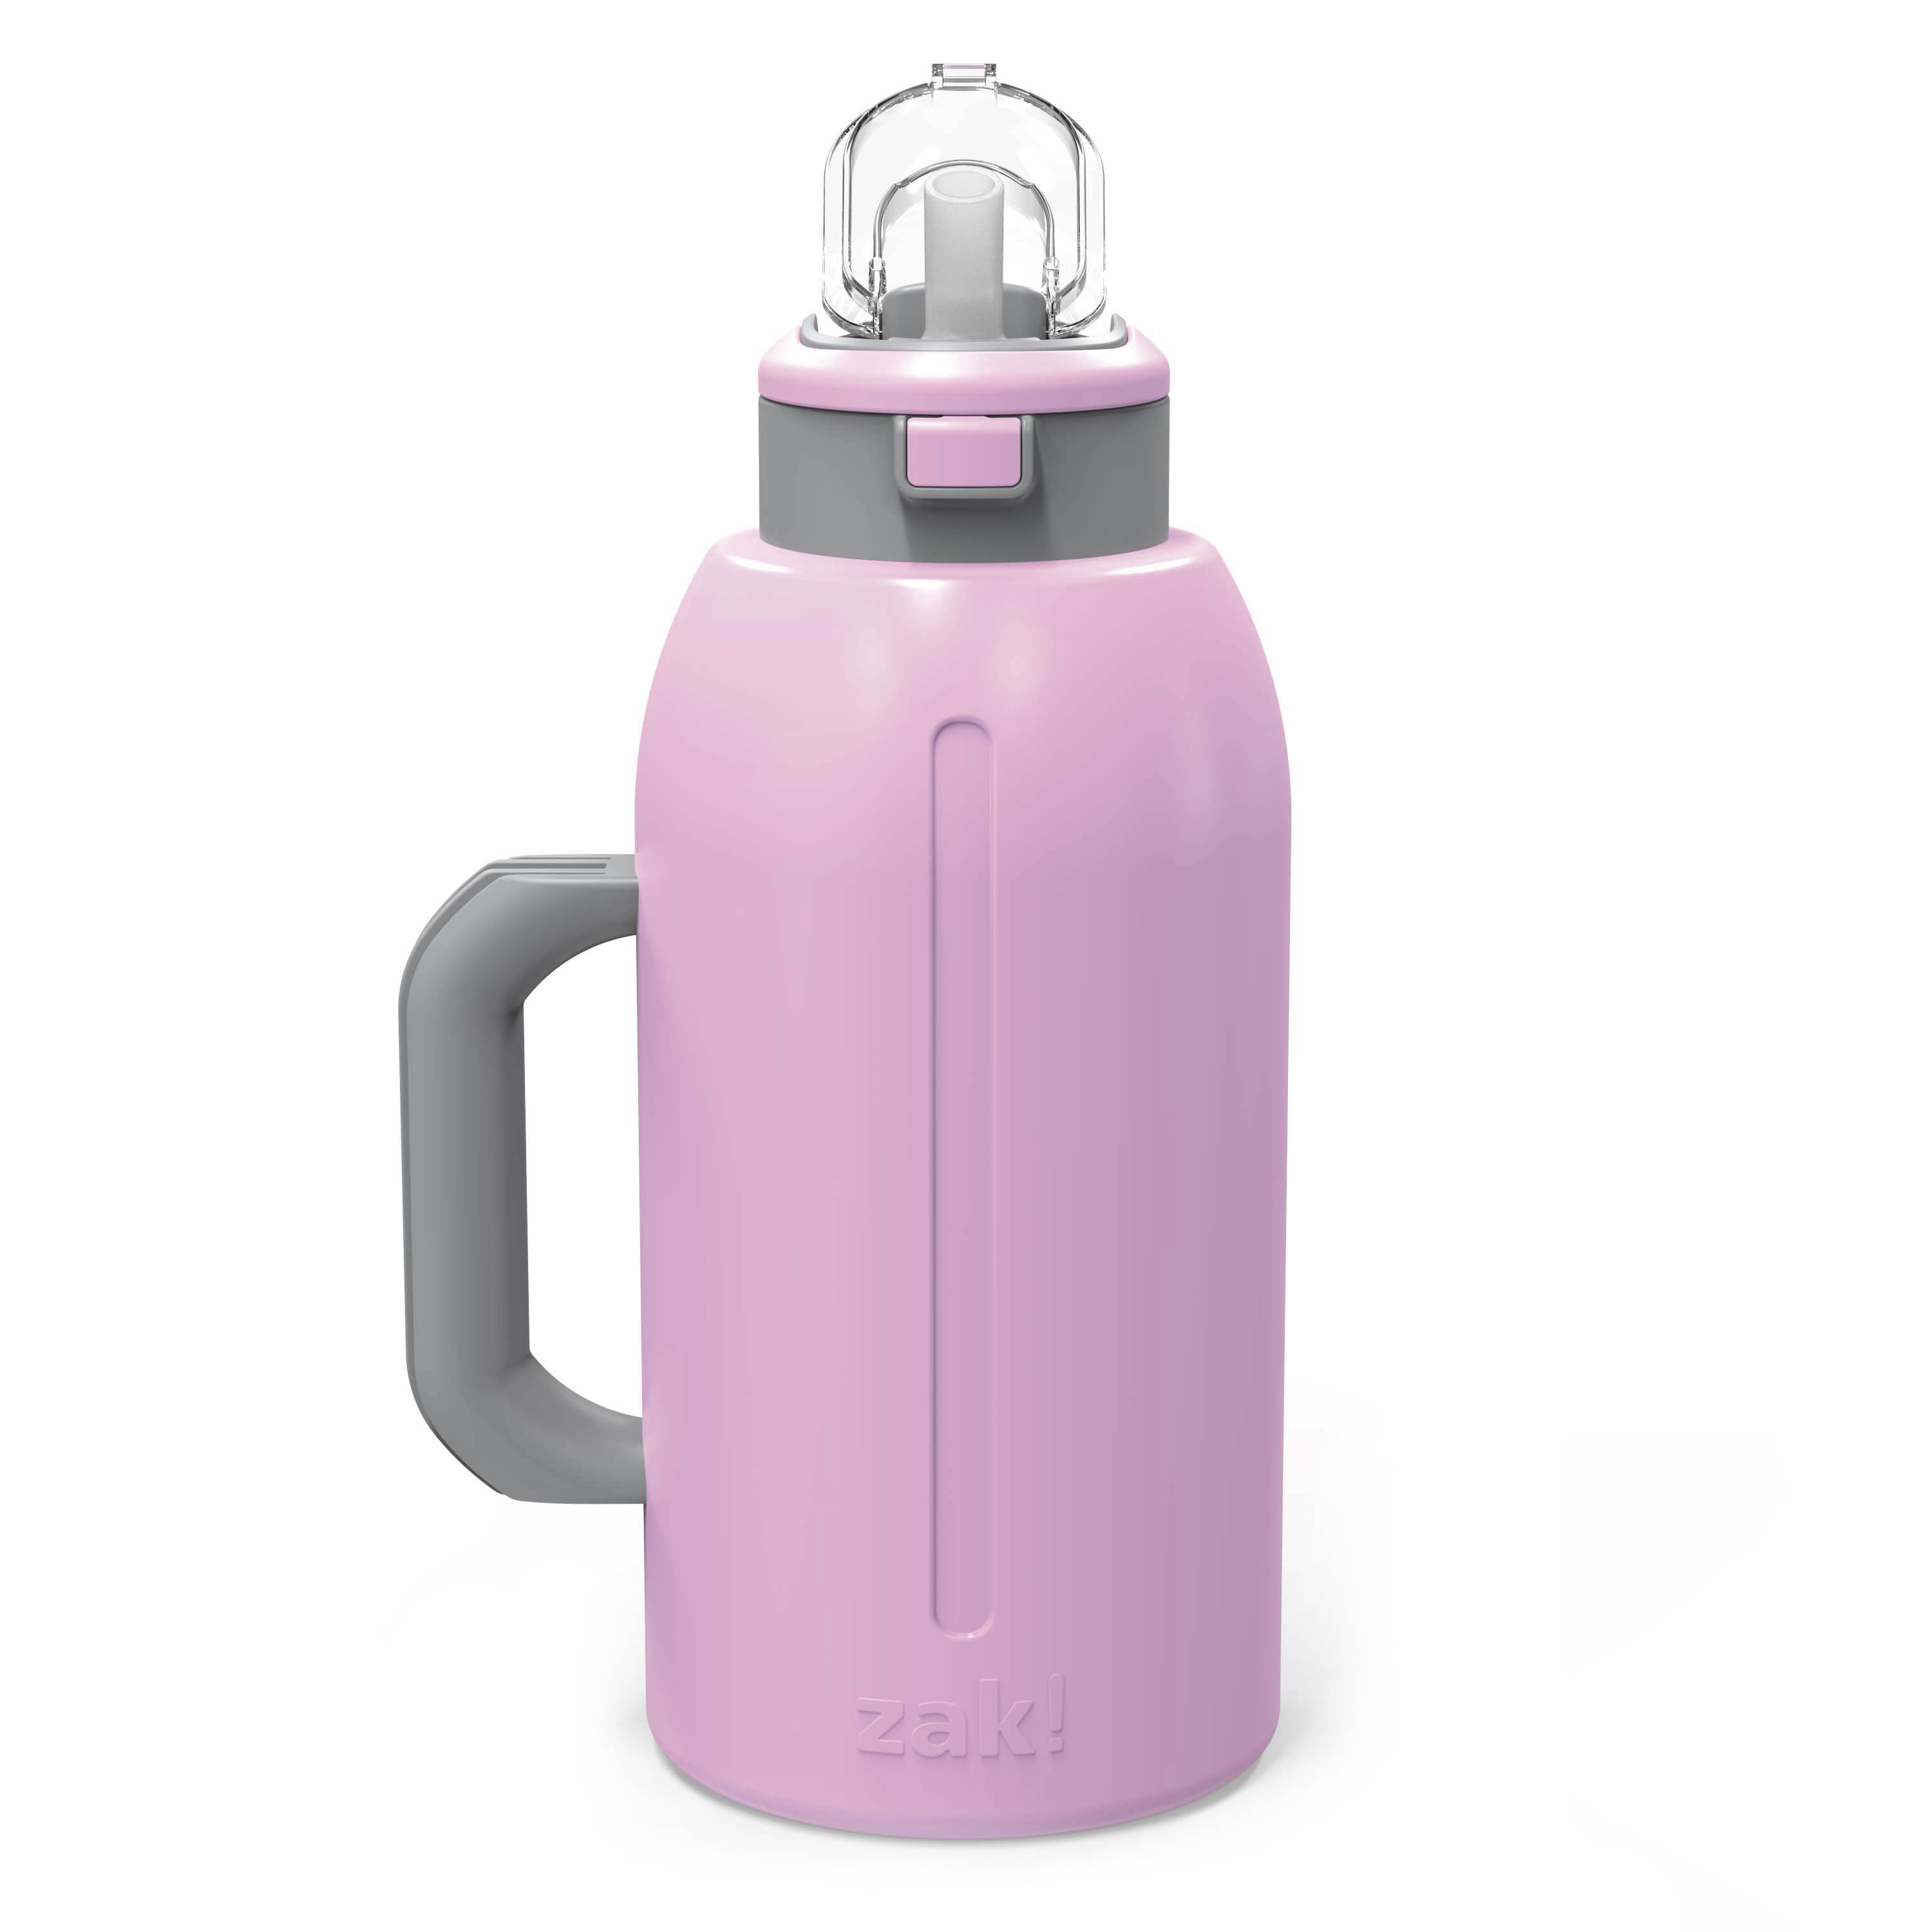 Genesis 64 ounce Stainless Steel Water Bottles, Lilac slideshow image 3